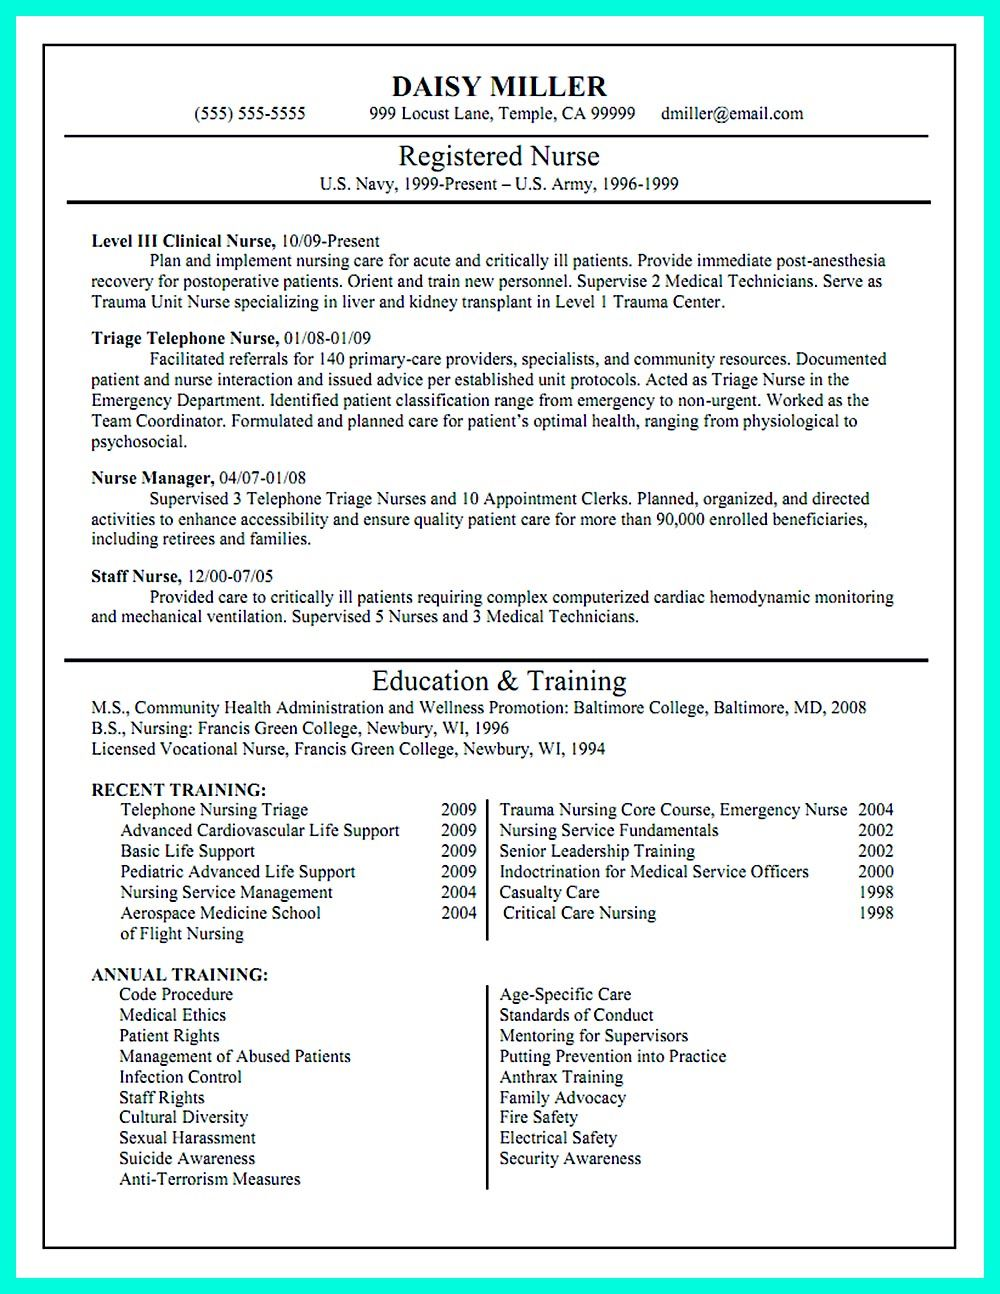 Critical Care Nurse Resume Has Skills Or Objectives That Are